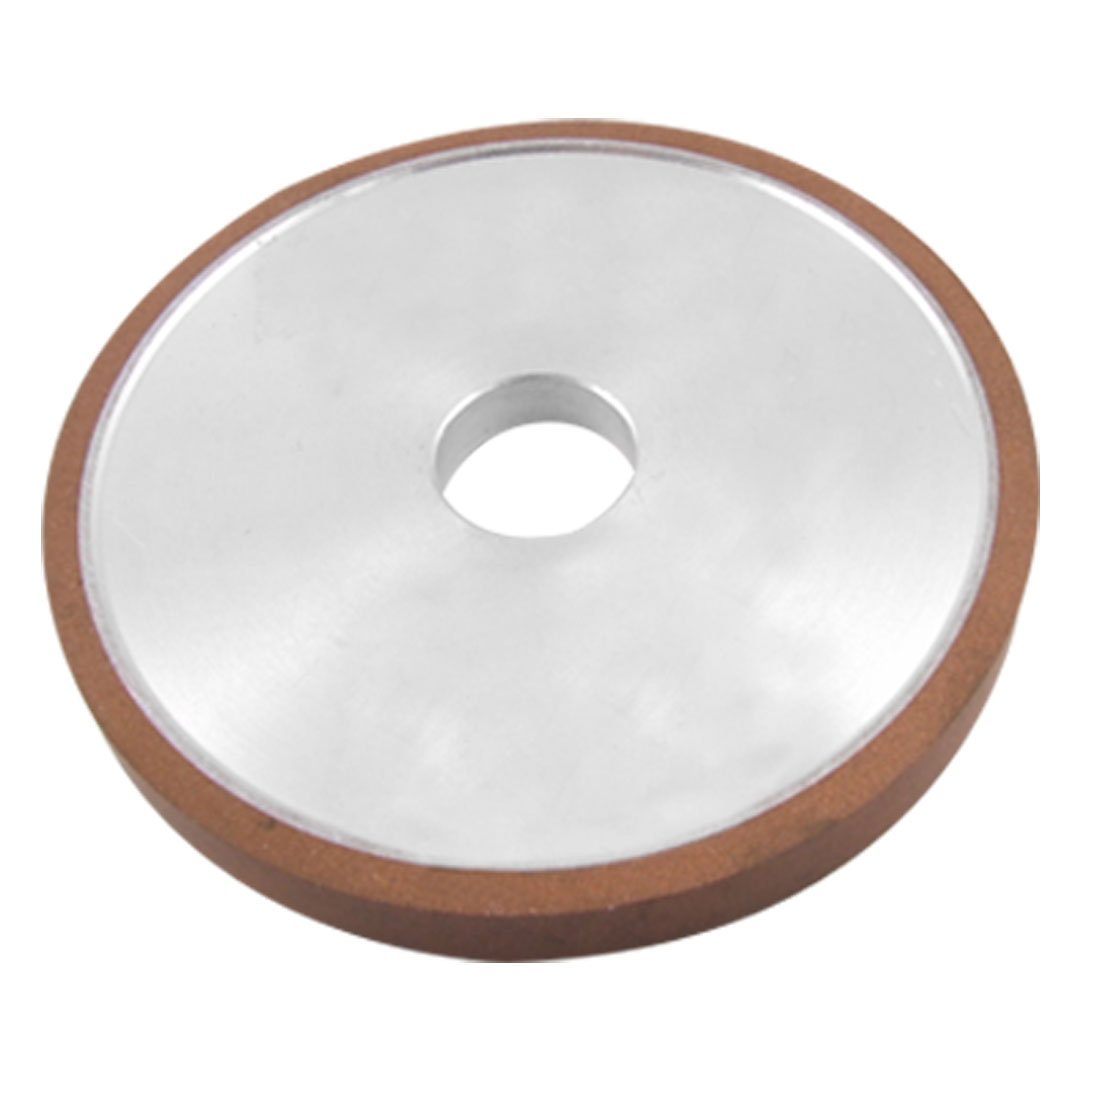 100mm-x-10mm-x-20mm-x-4mm-Plain-Type-Resin-Diamond-Grinding-Wheel-180-Grit